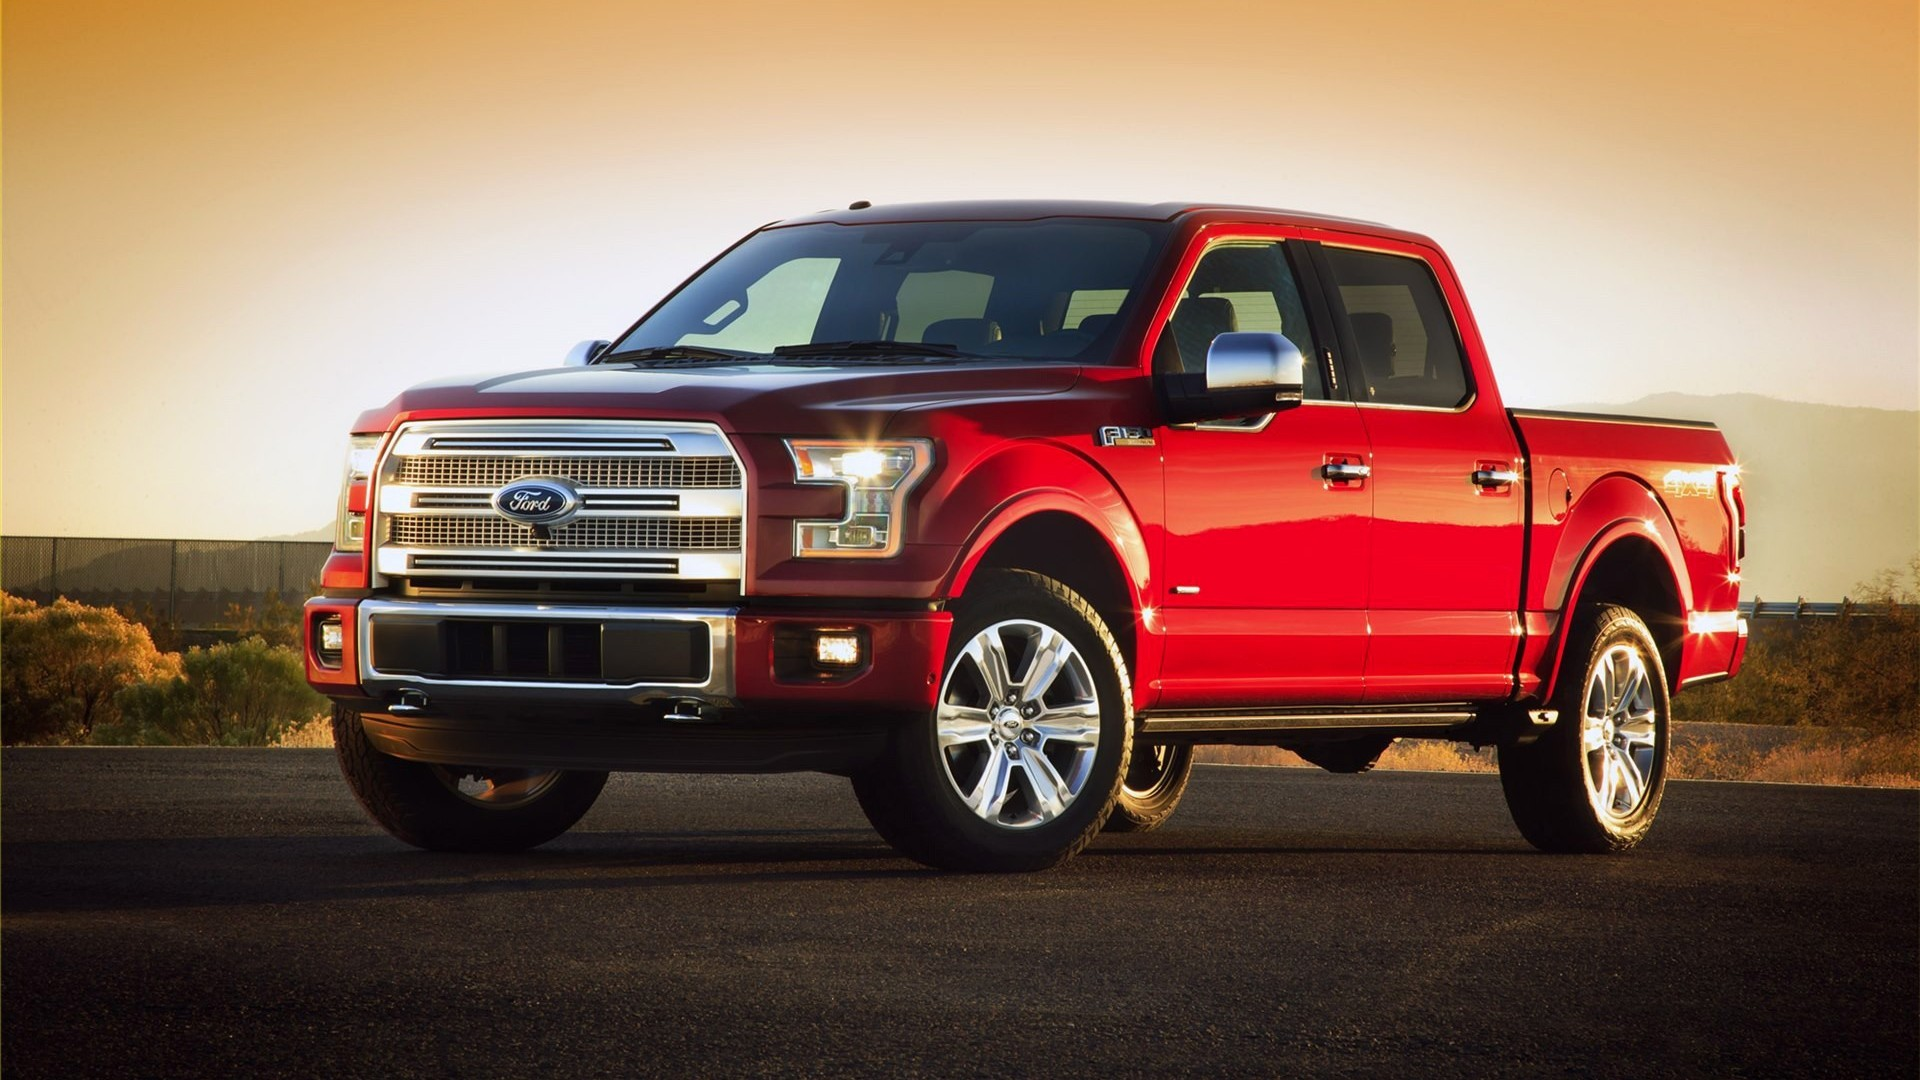 Ford Truck Wallpapers HD For Desktop.